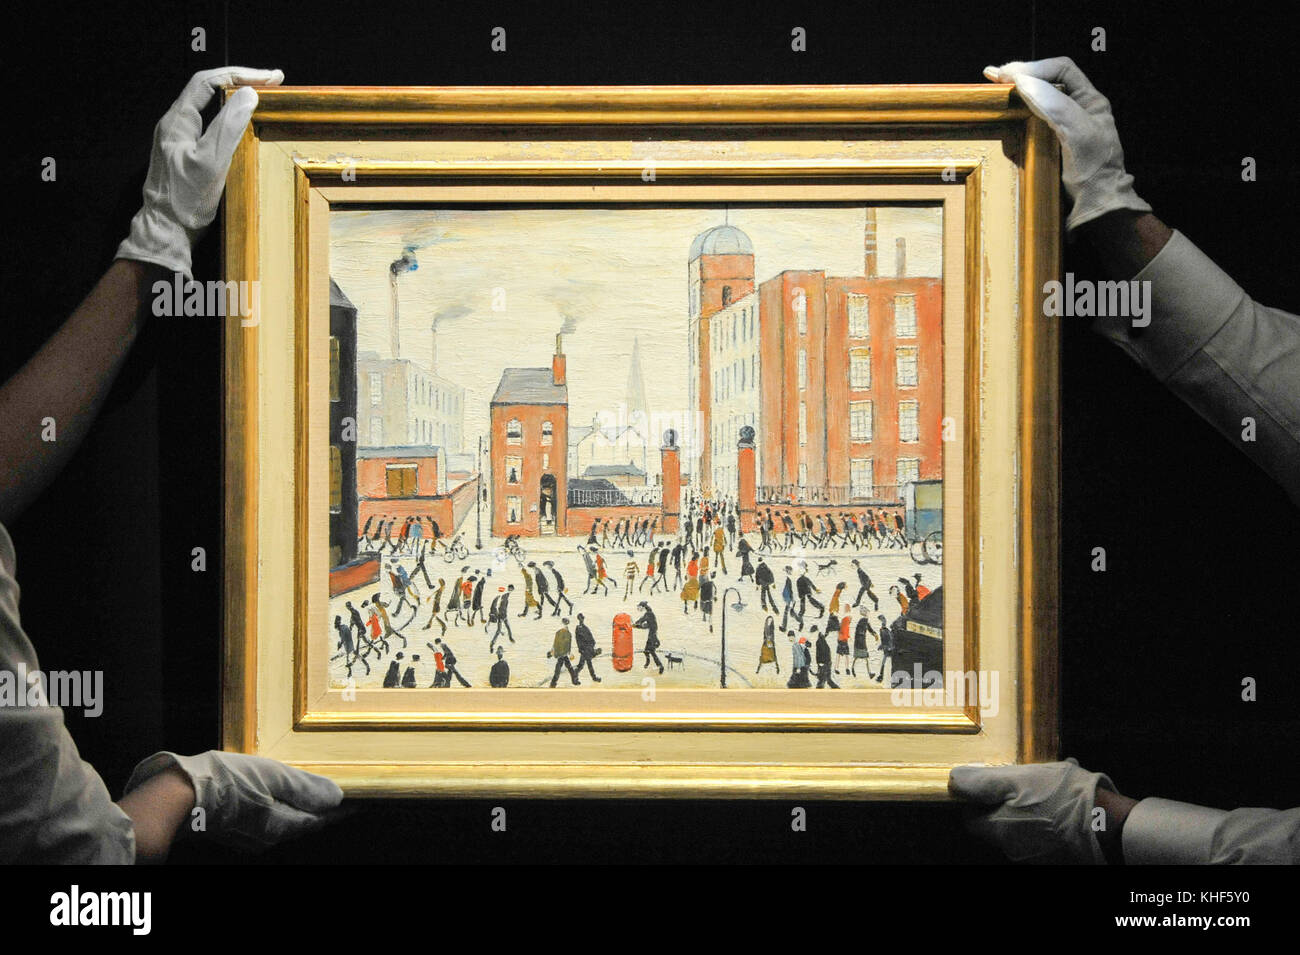 Pittore Inglese Lowry L S Lowry Stock Photos L S Lowry Stock Images Alamy